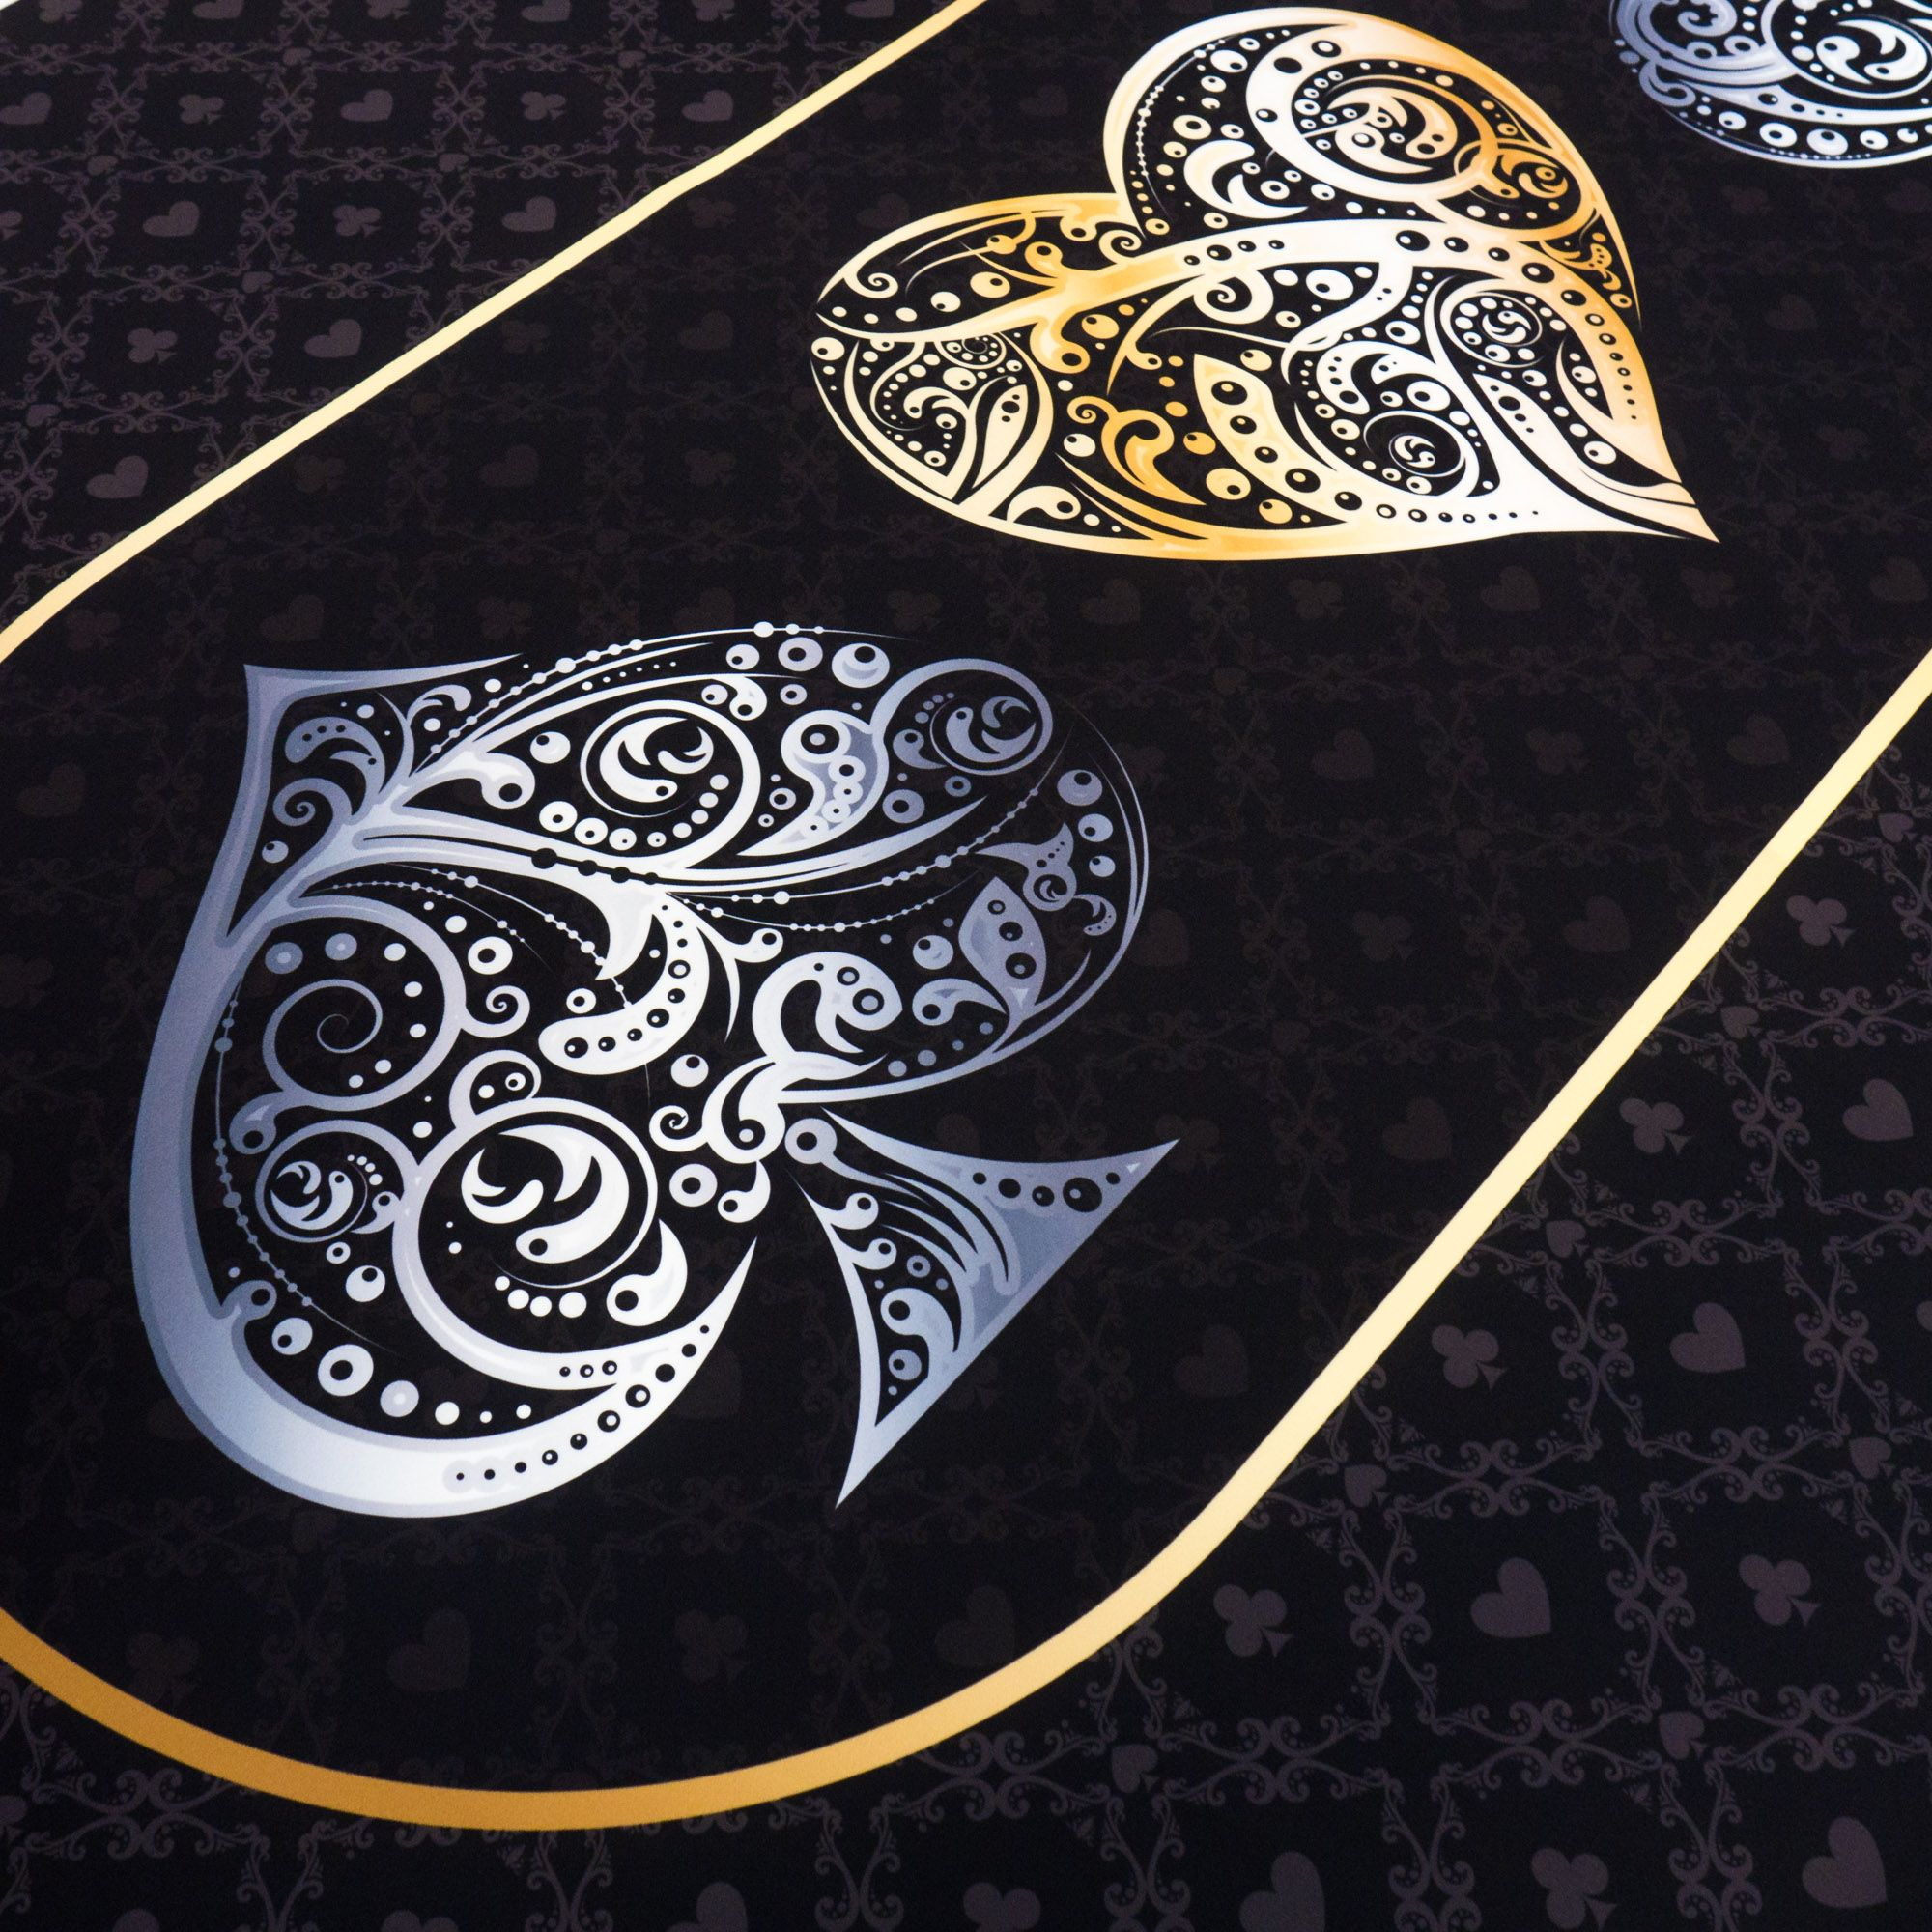 Charmant Slick Graphics On This Custom Poker Table Felt. Design Your Custom Poker  Table Felt Today